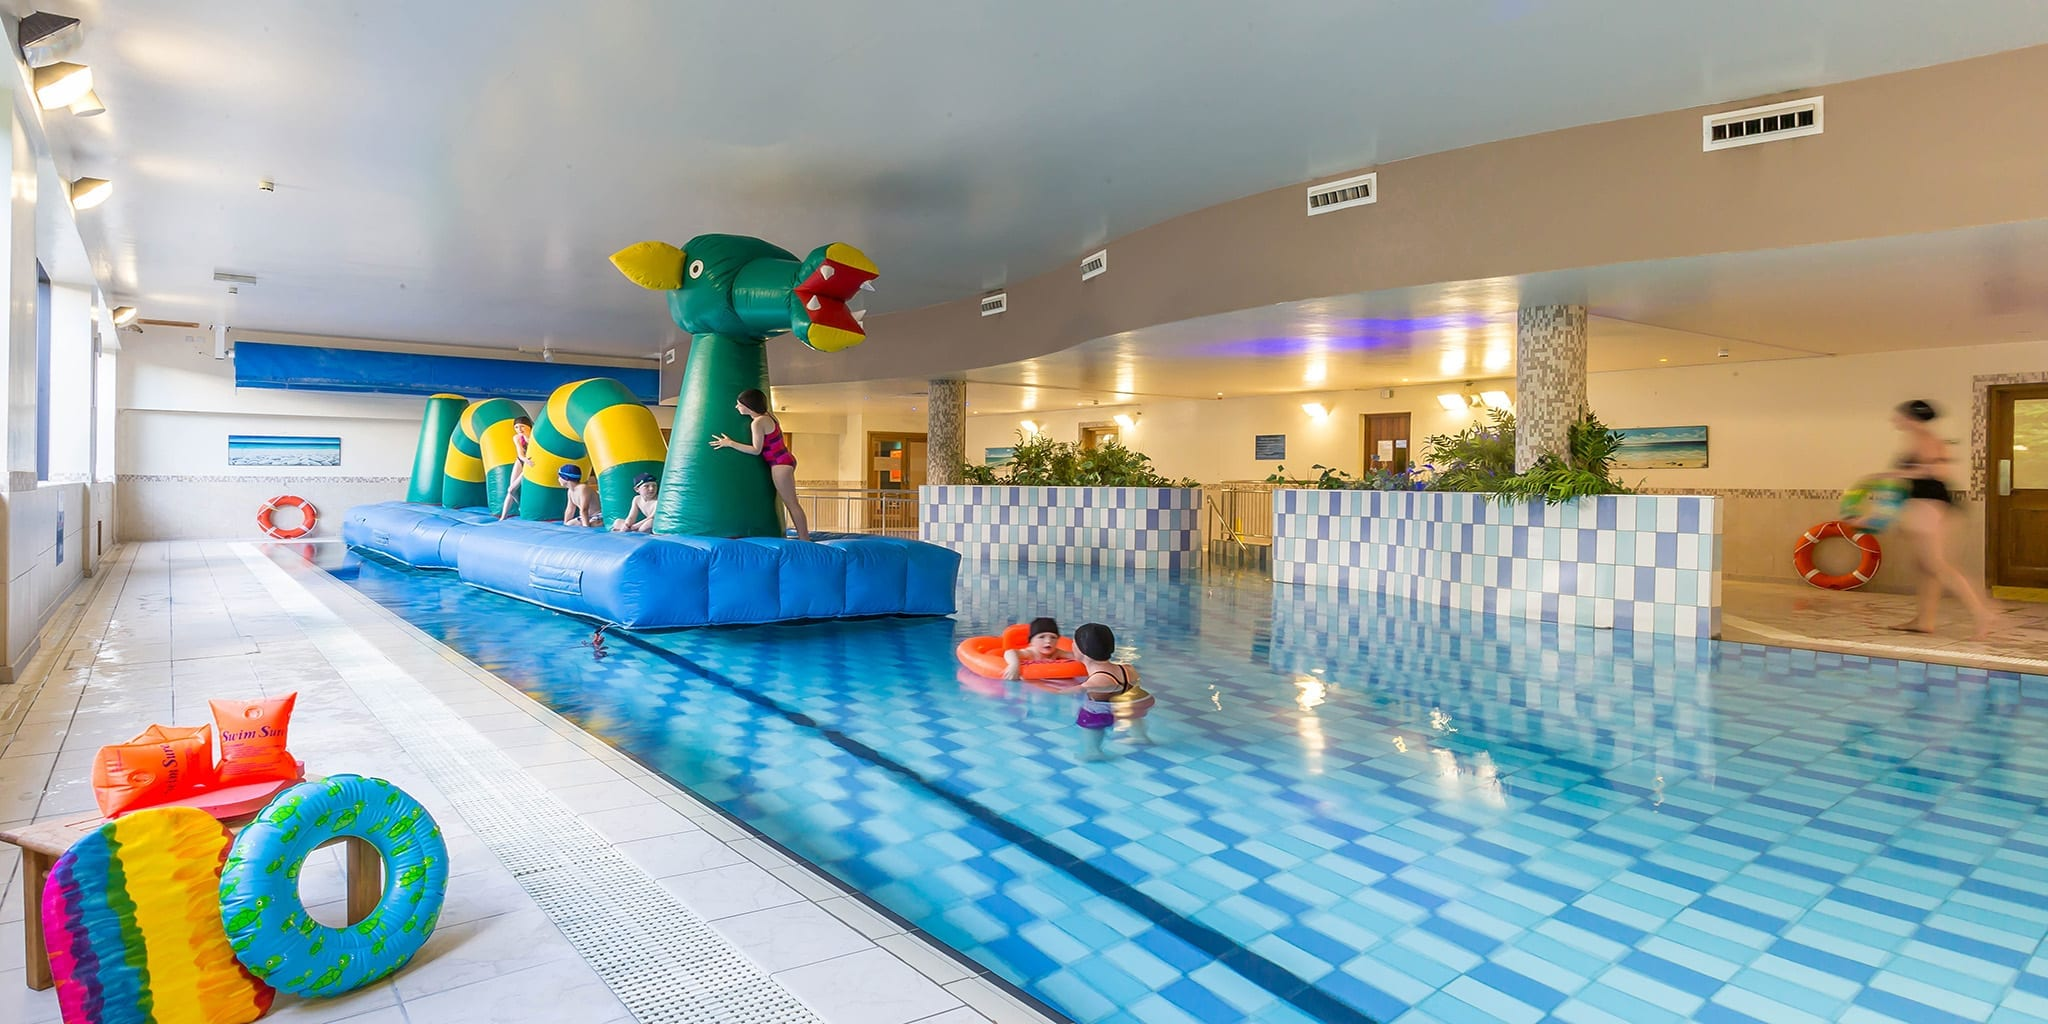 Hotels in sligo town 4 star clayton hotel sligo - Whitefish bay pool open swim hours ...